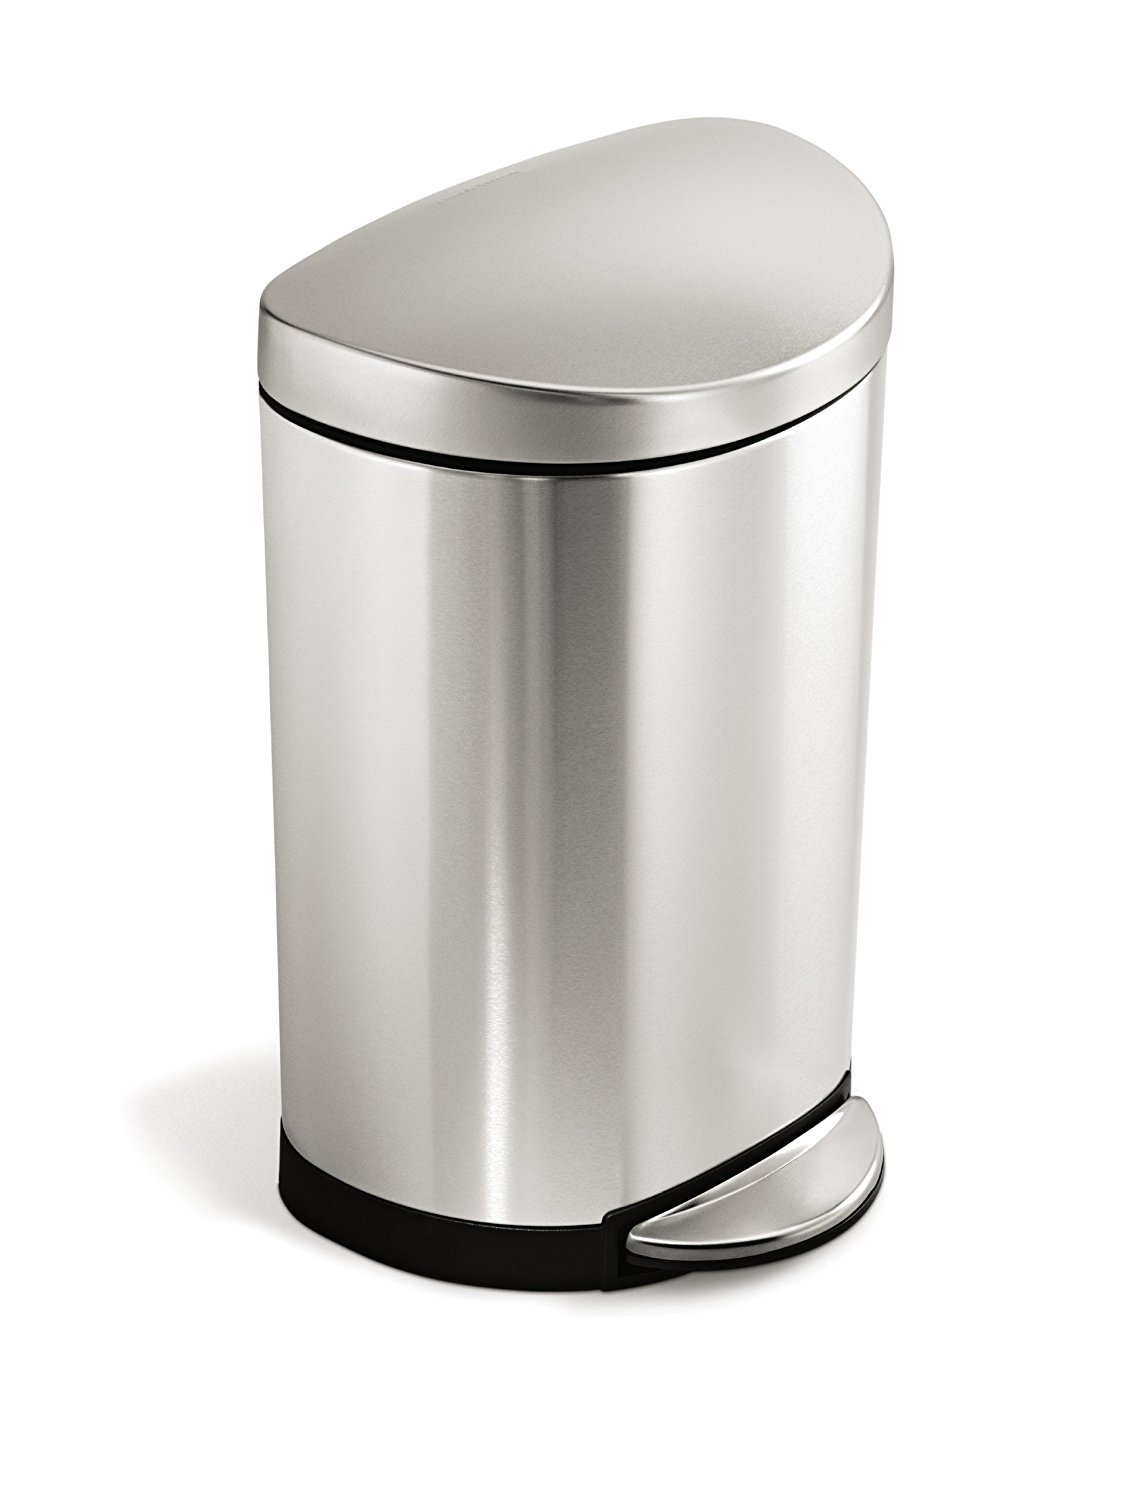 simplehuman 10 Liter / 2.3 Gallon Stainless Steel Small Semi-Round Bathroom Step Trash Can, Brushed Stainless Steel by simplehuman